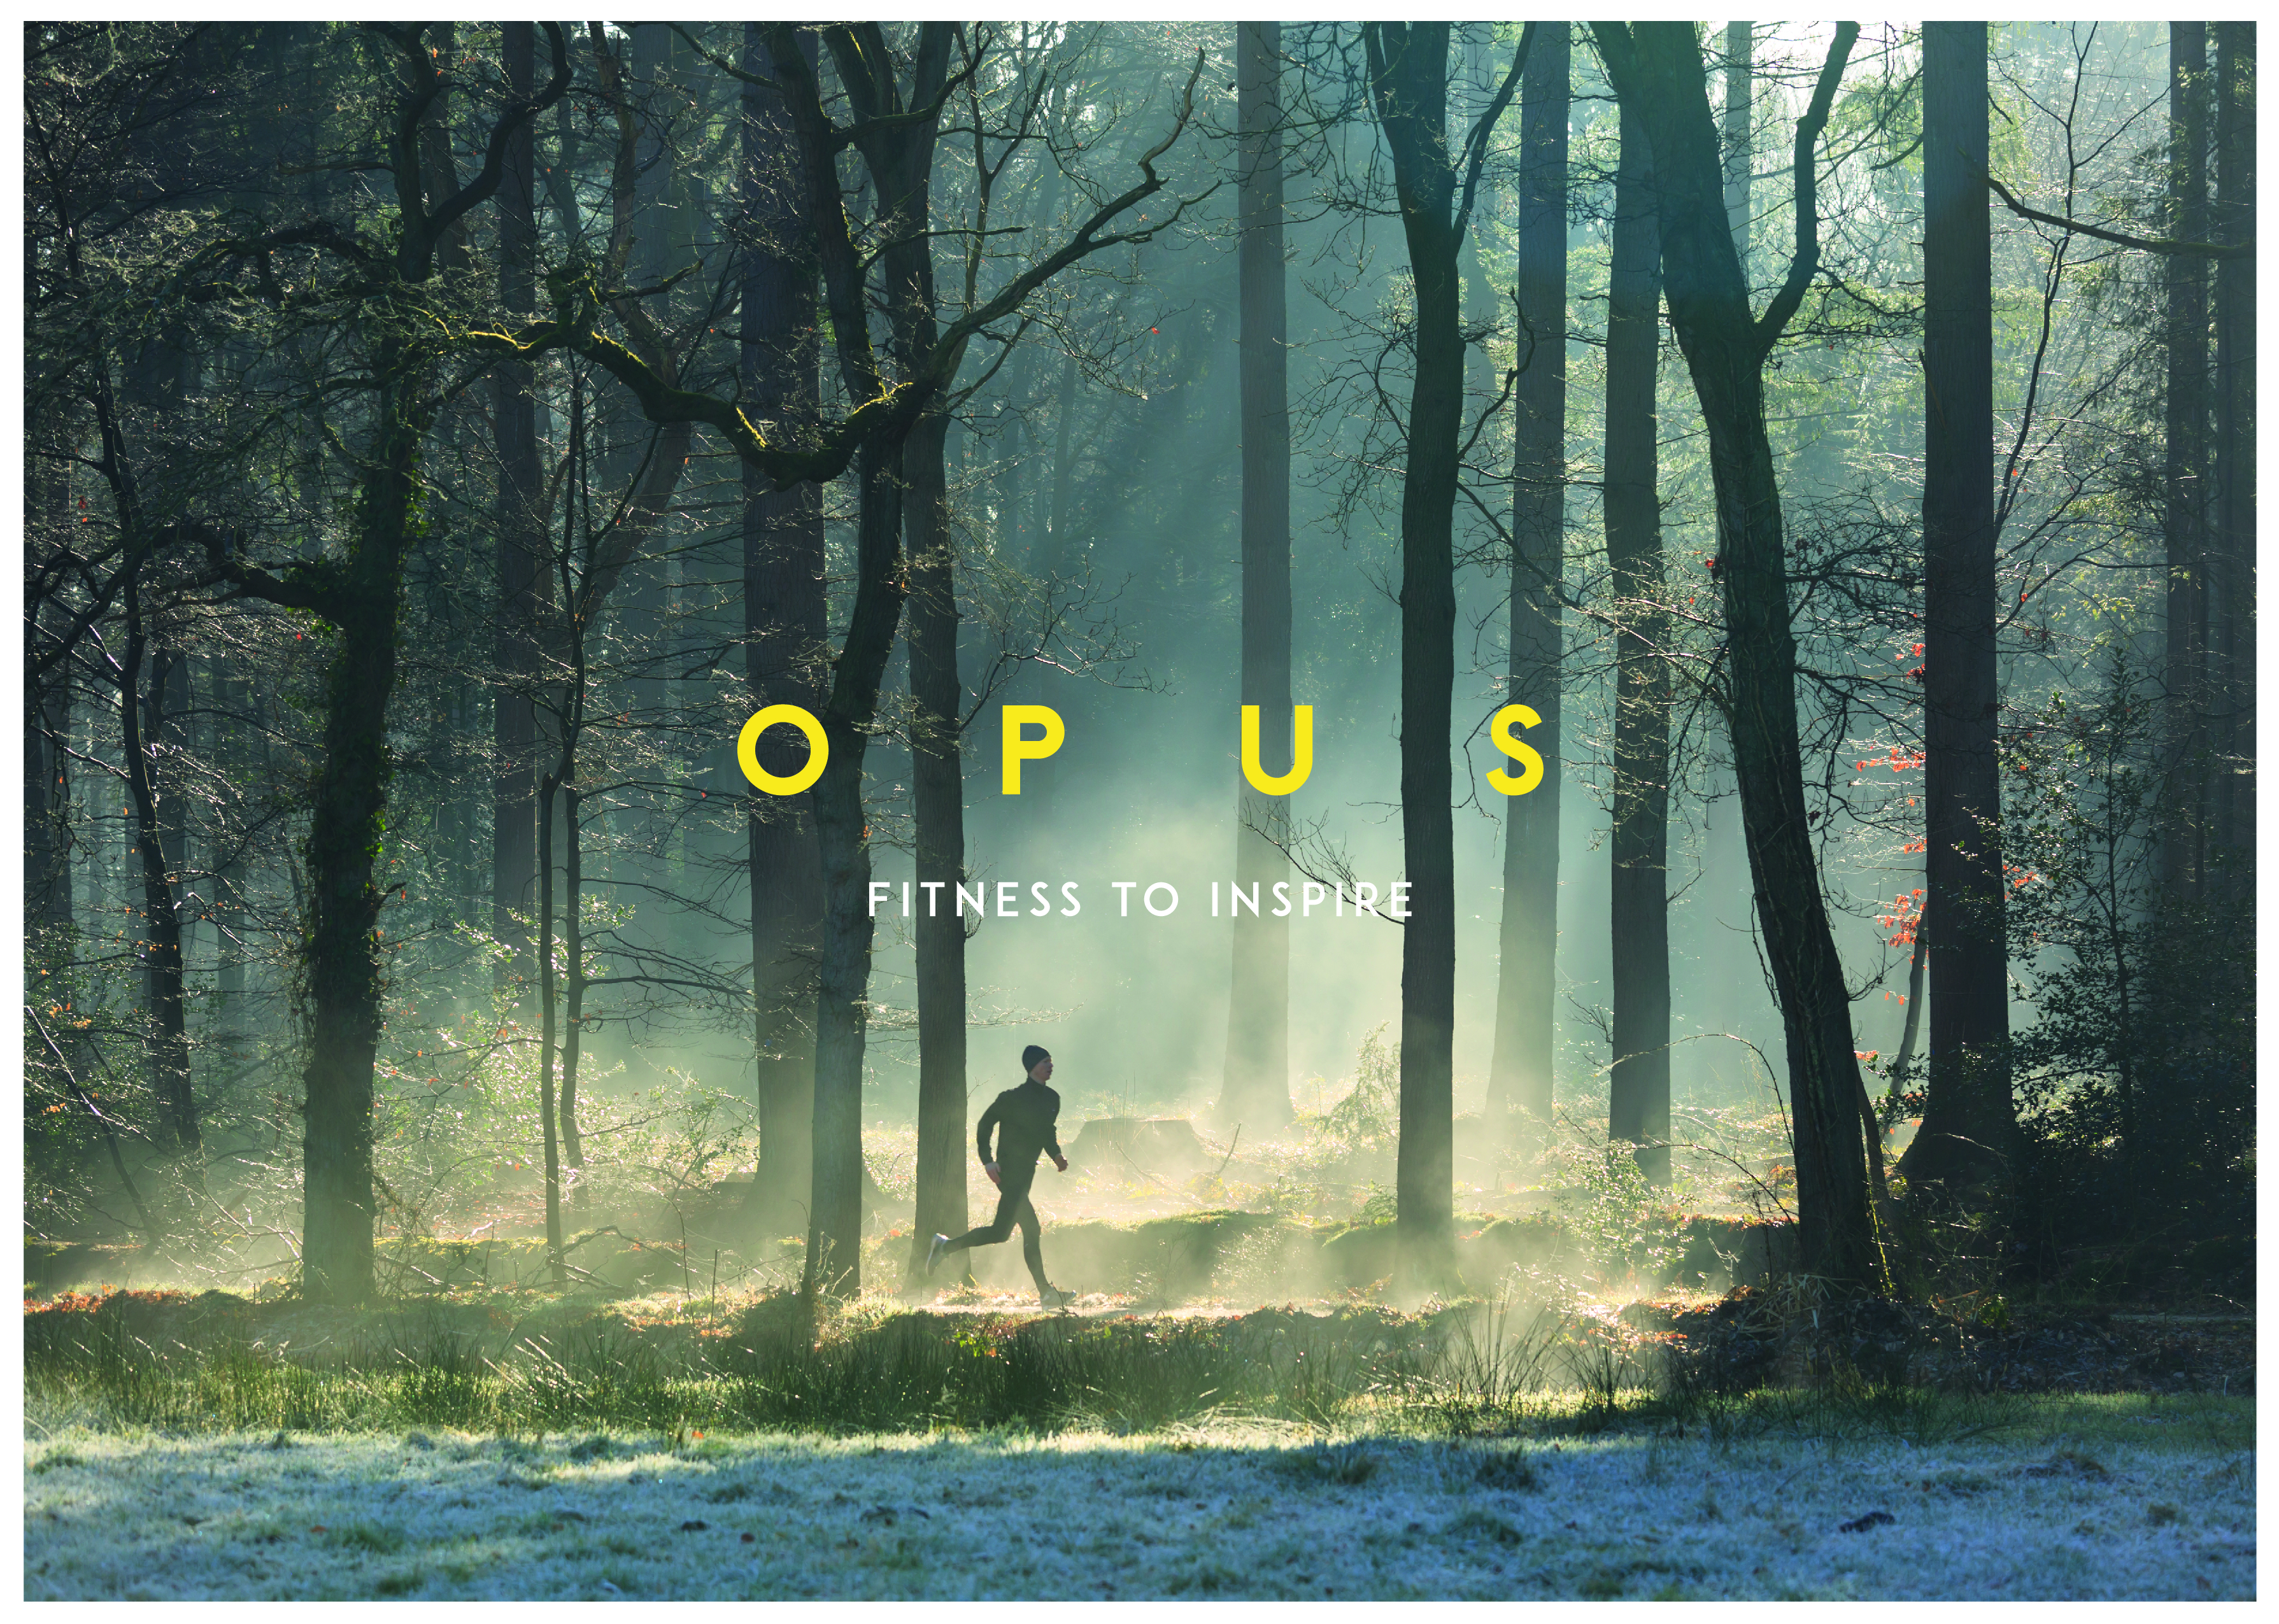 opus_logo_woods_background-01